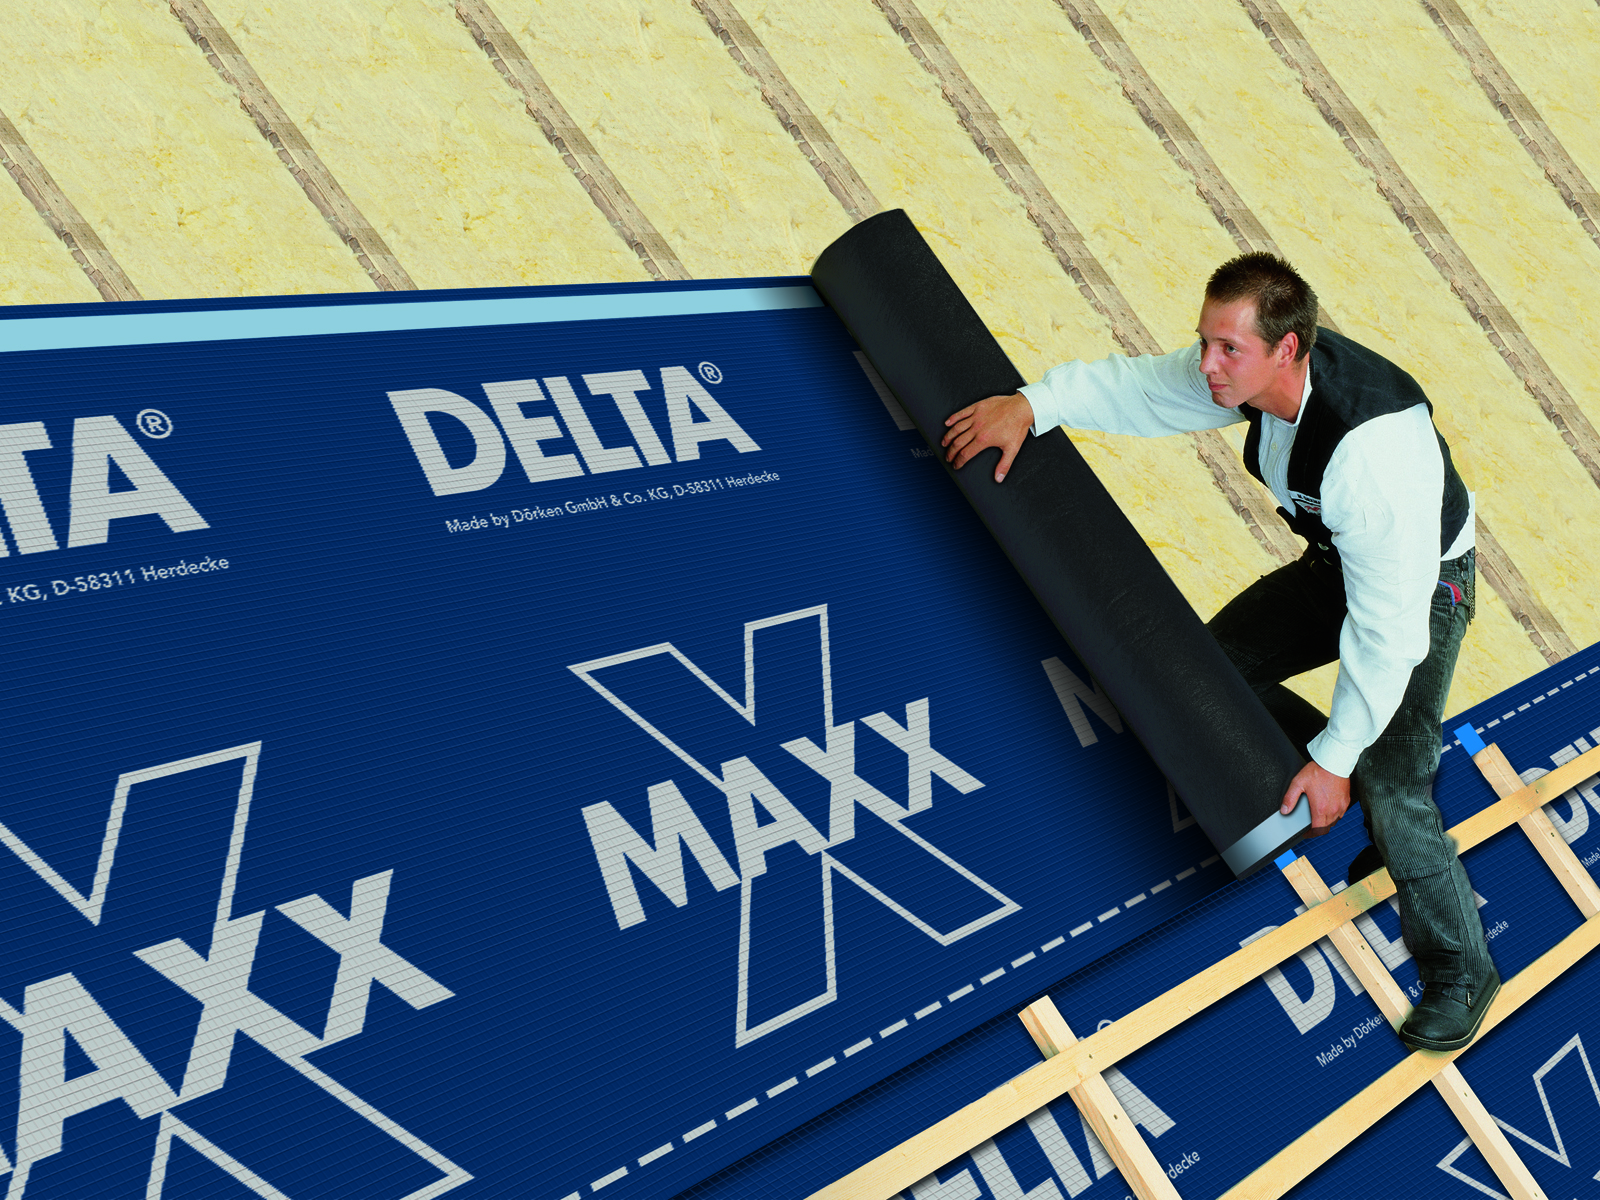 DELTA®-MAXX X - Application